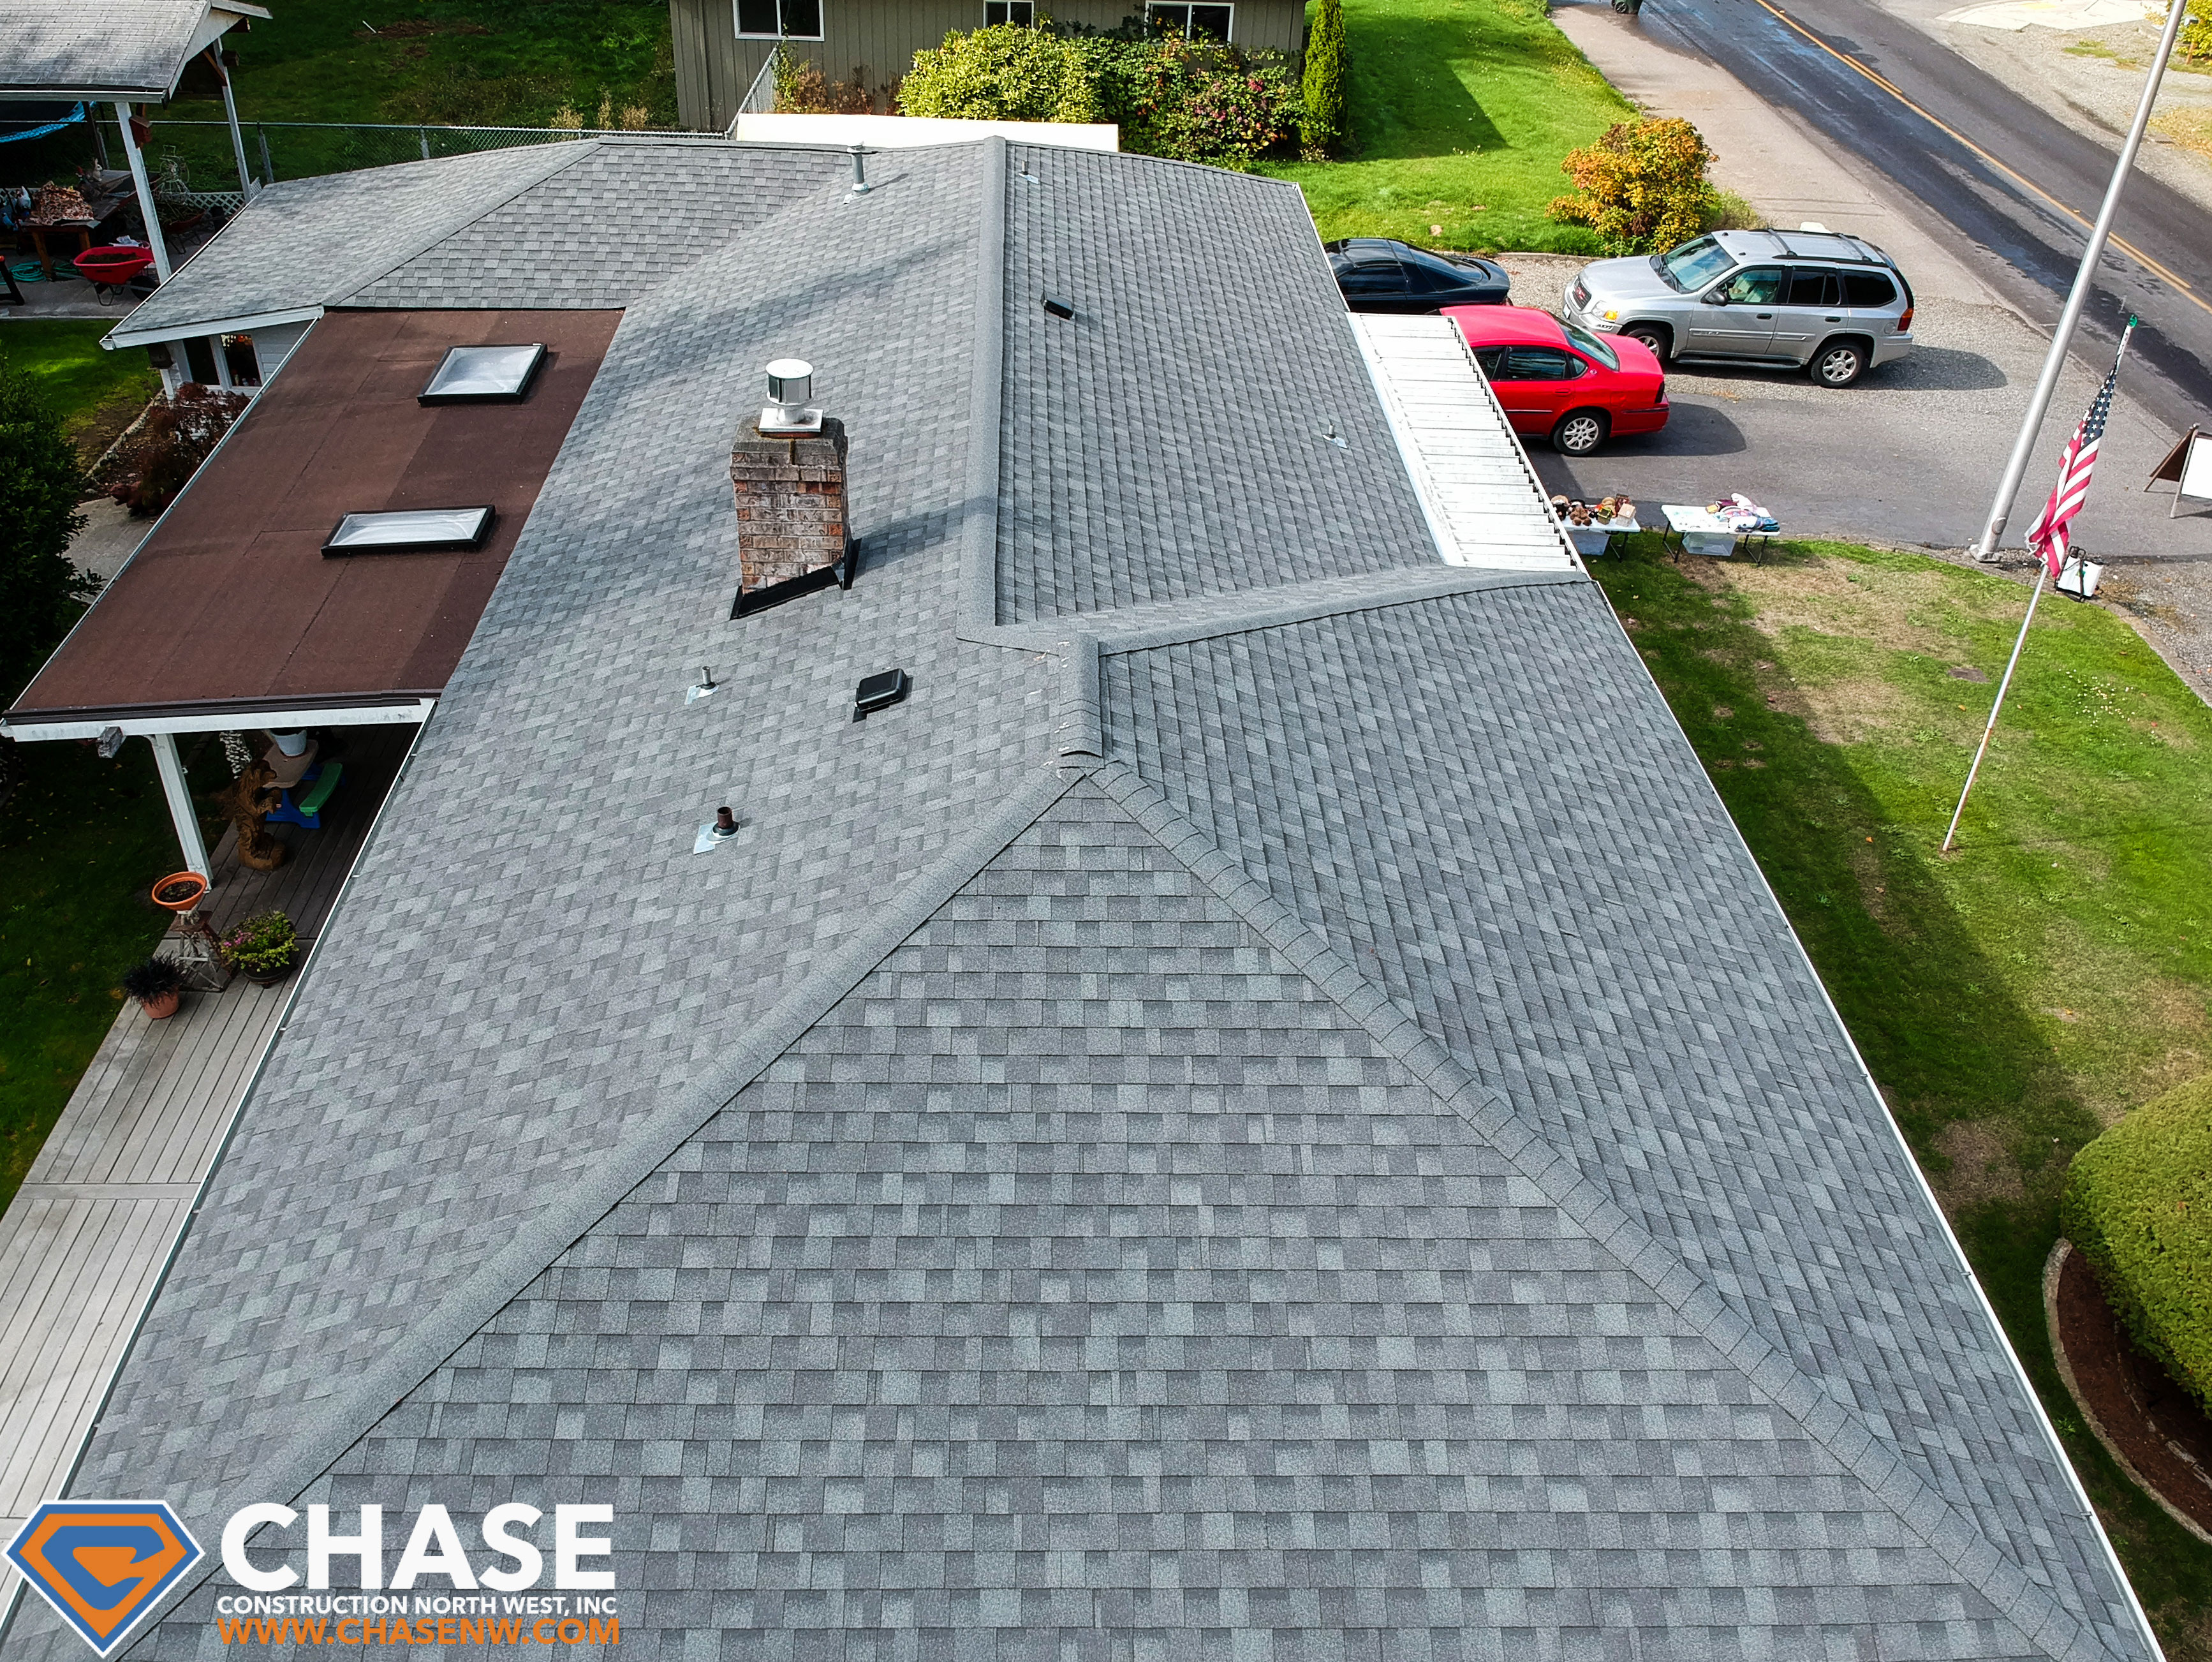 Iko Cambridge Shingle Roof In Spanaway Chase